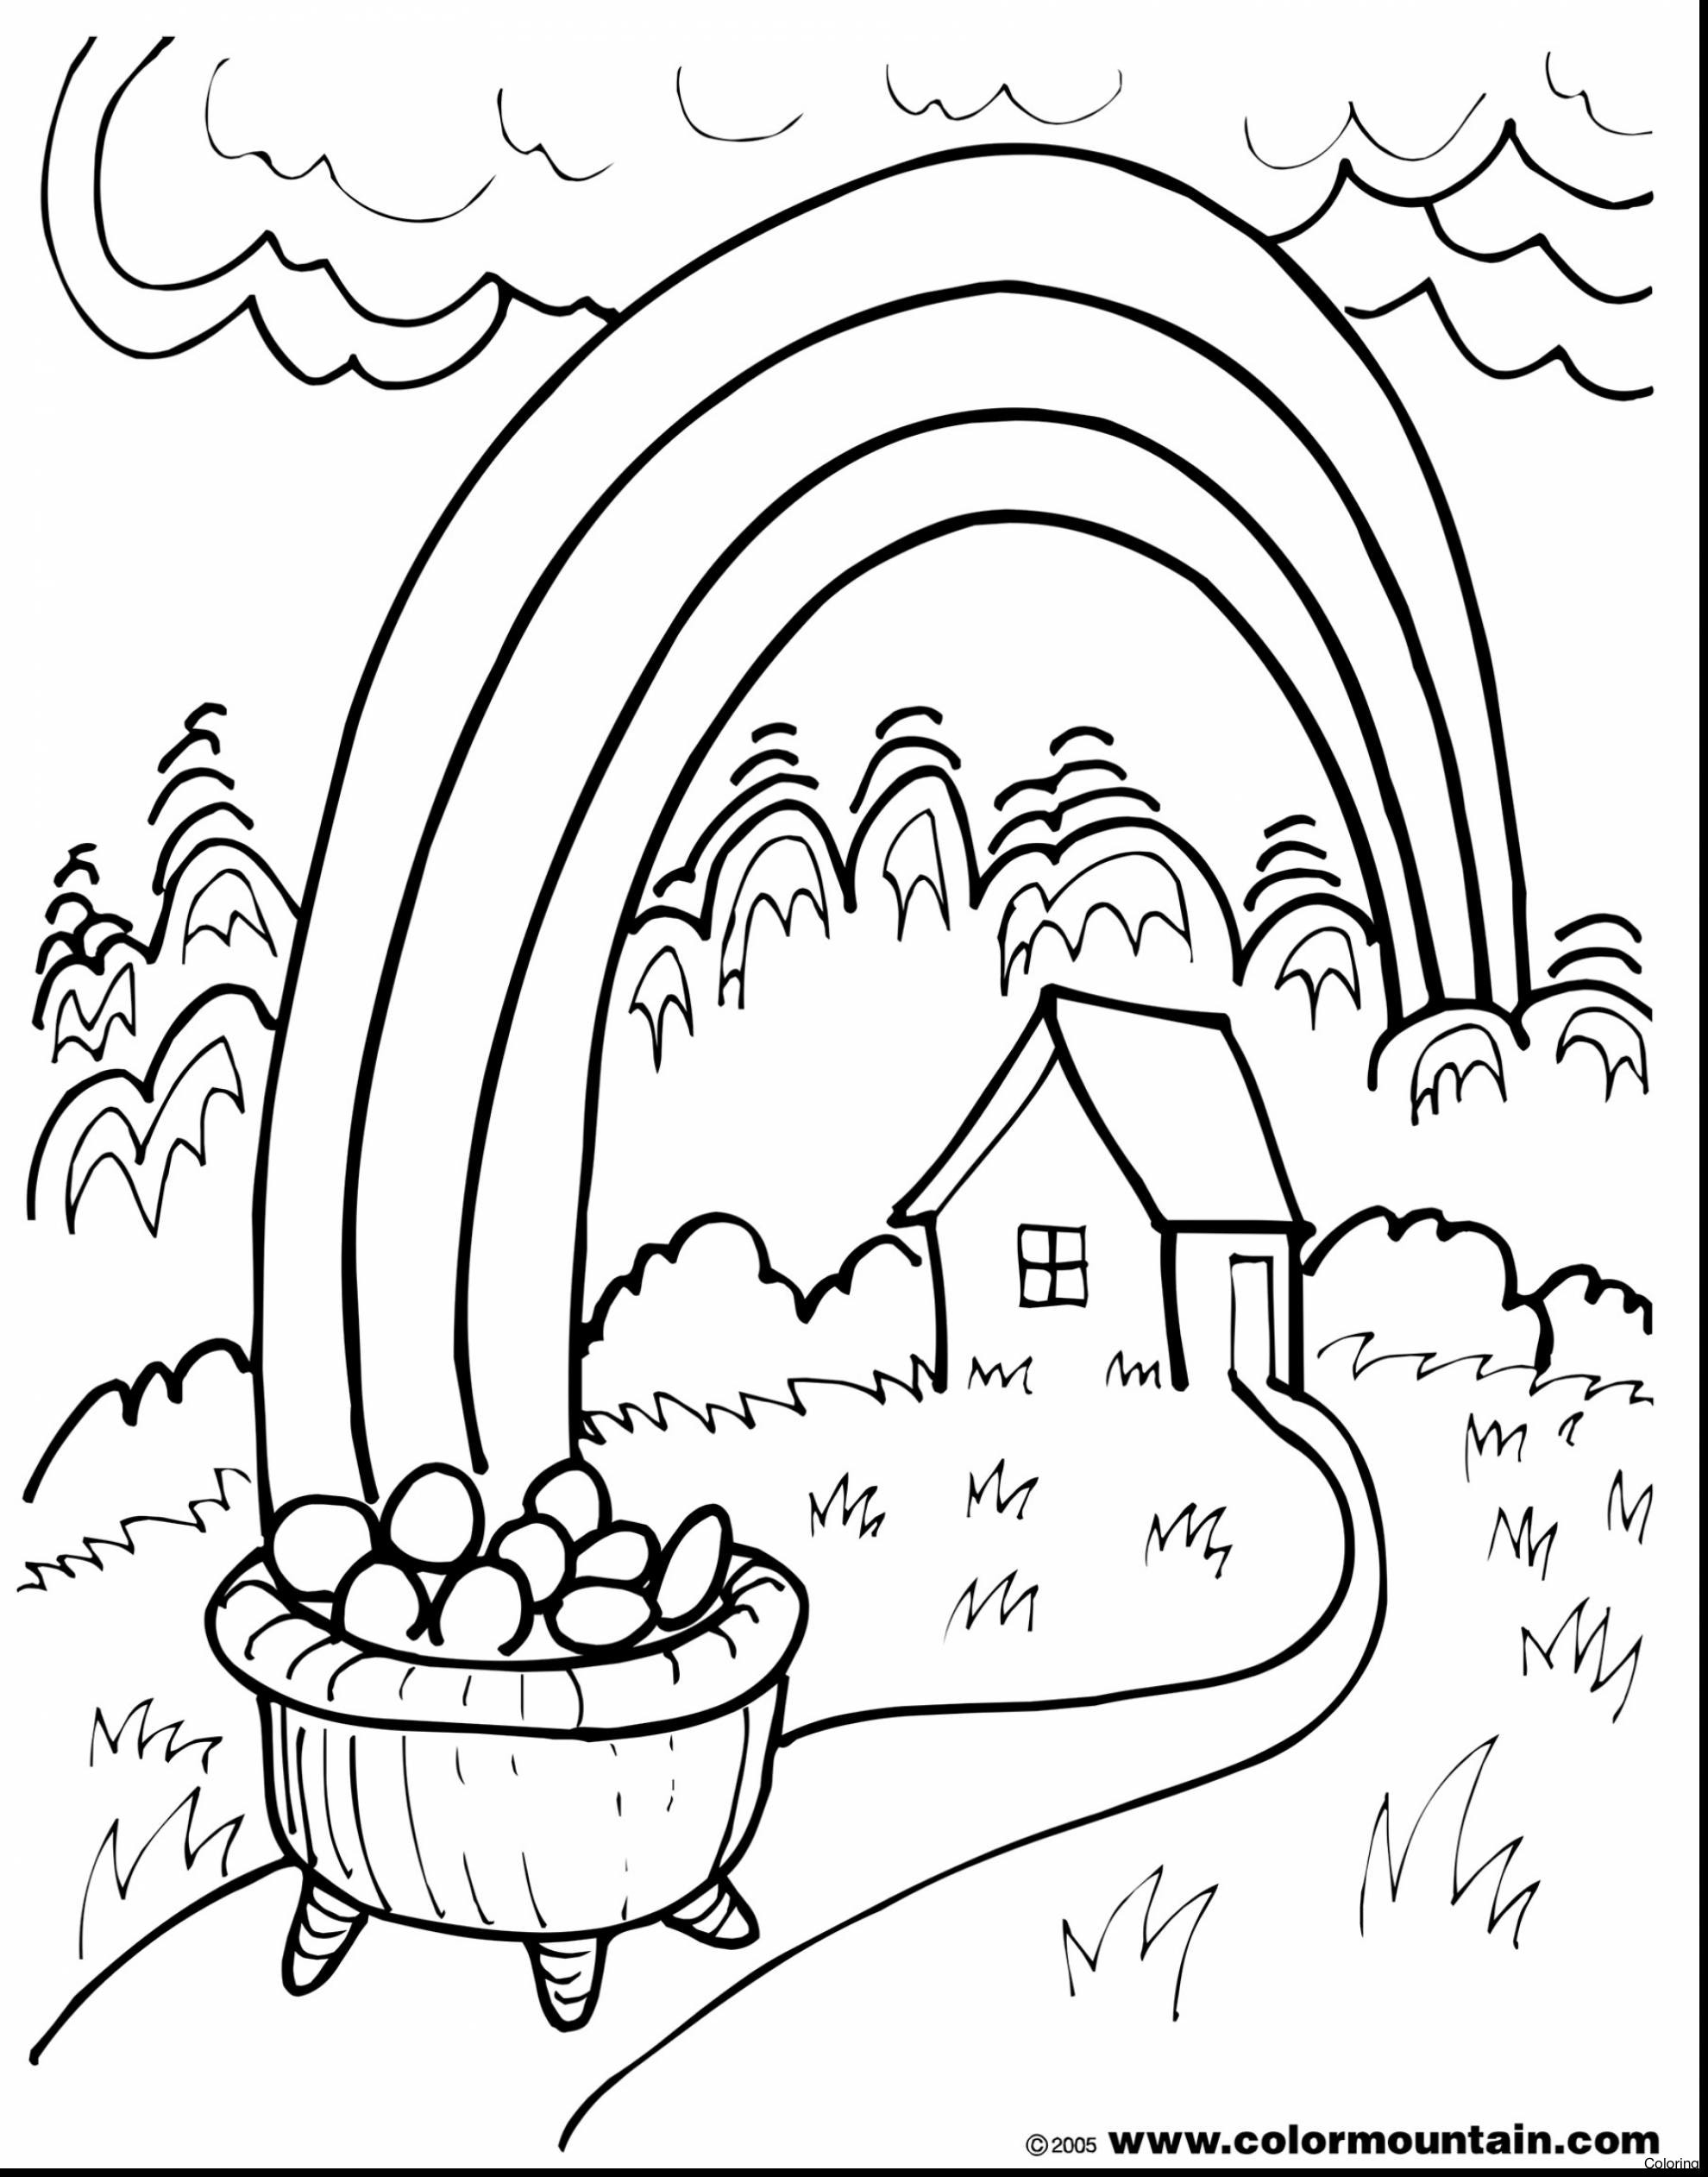 Pot Of Gold Coloring Page At Getdrawings Com Free For Personal Use